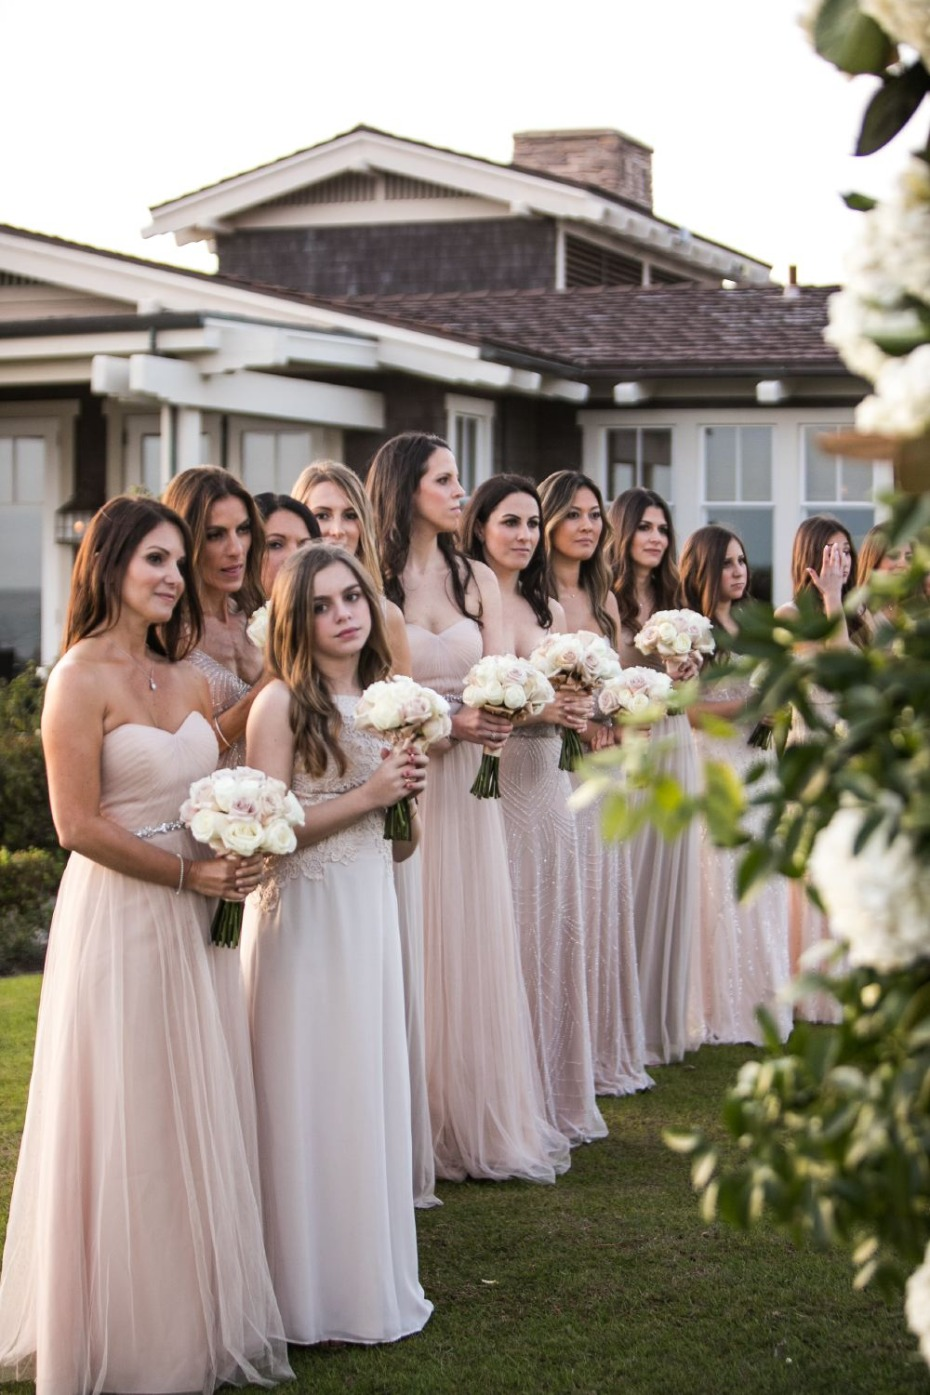 bridesmaids in neutral floor length dresses